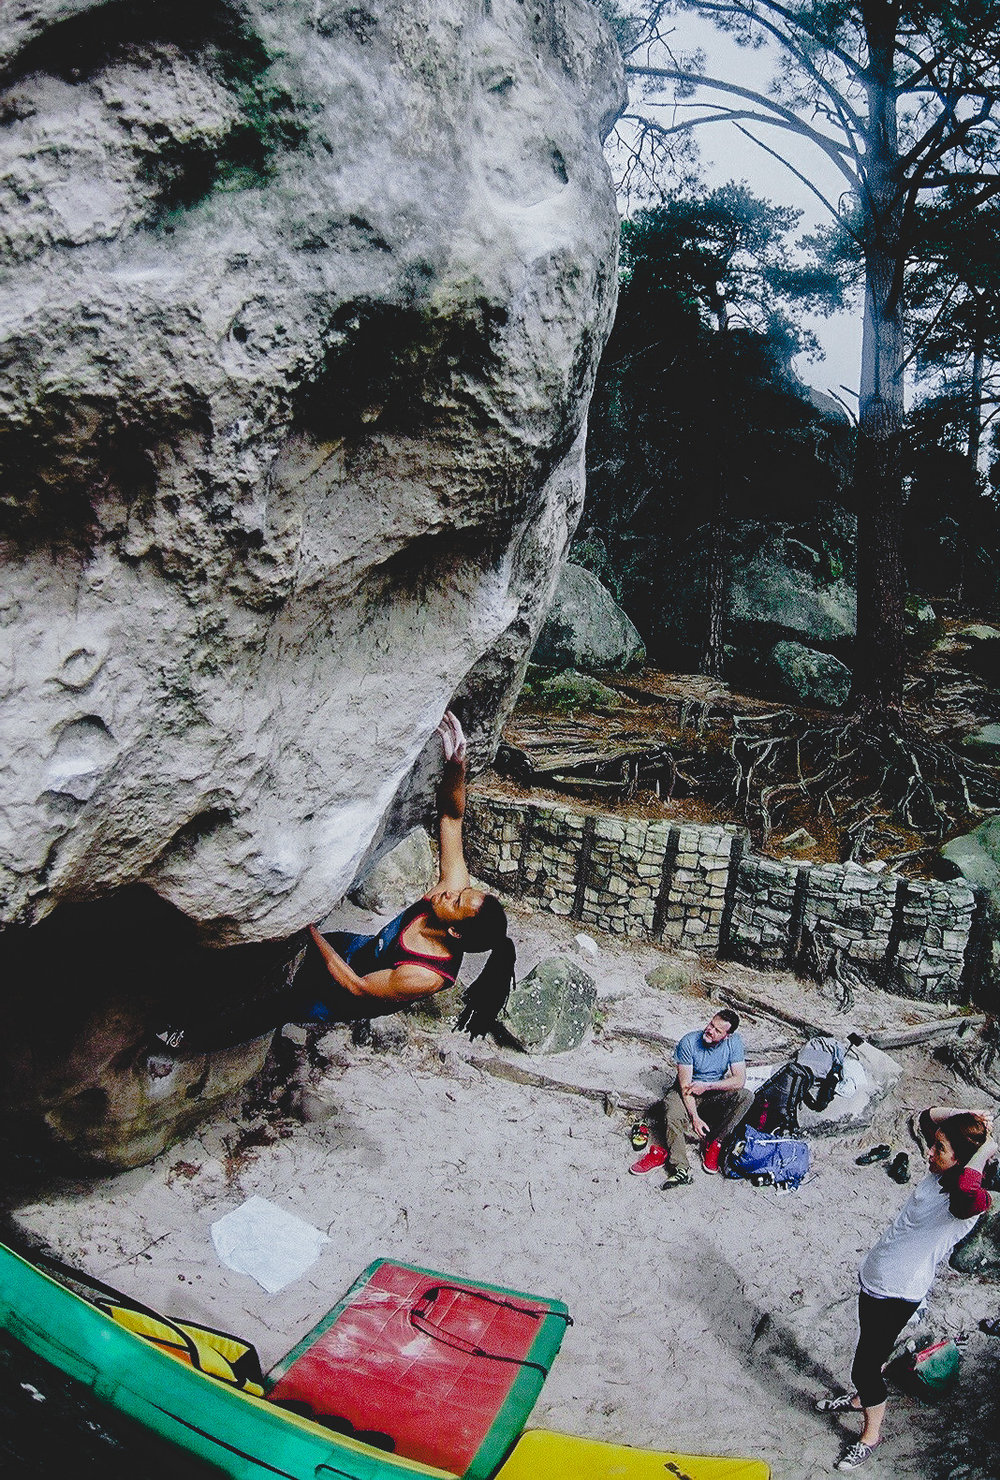 I love rock climbing - this is me in fontainebleau picture Richard Pickford